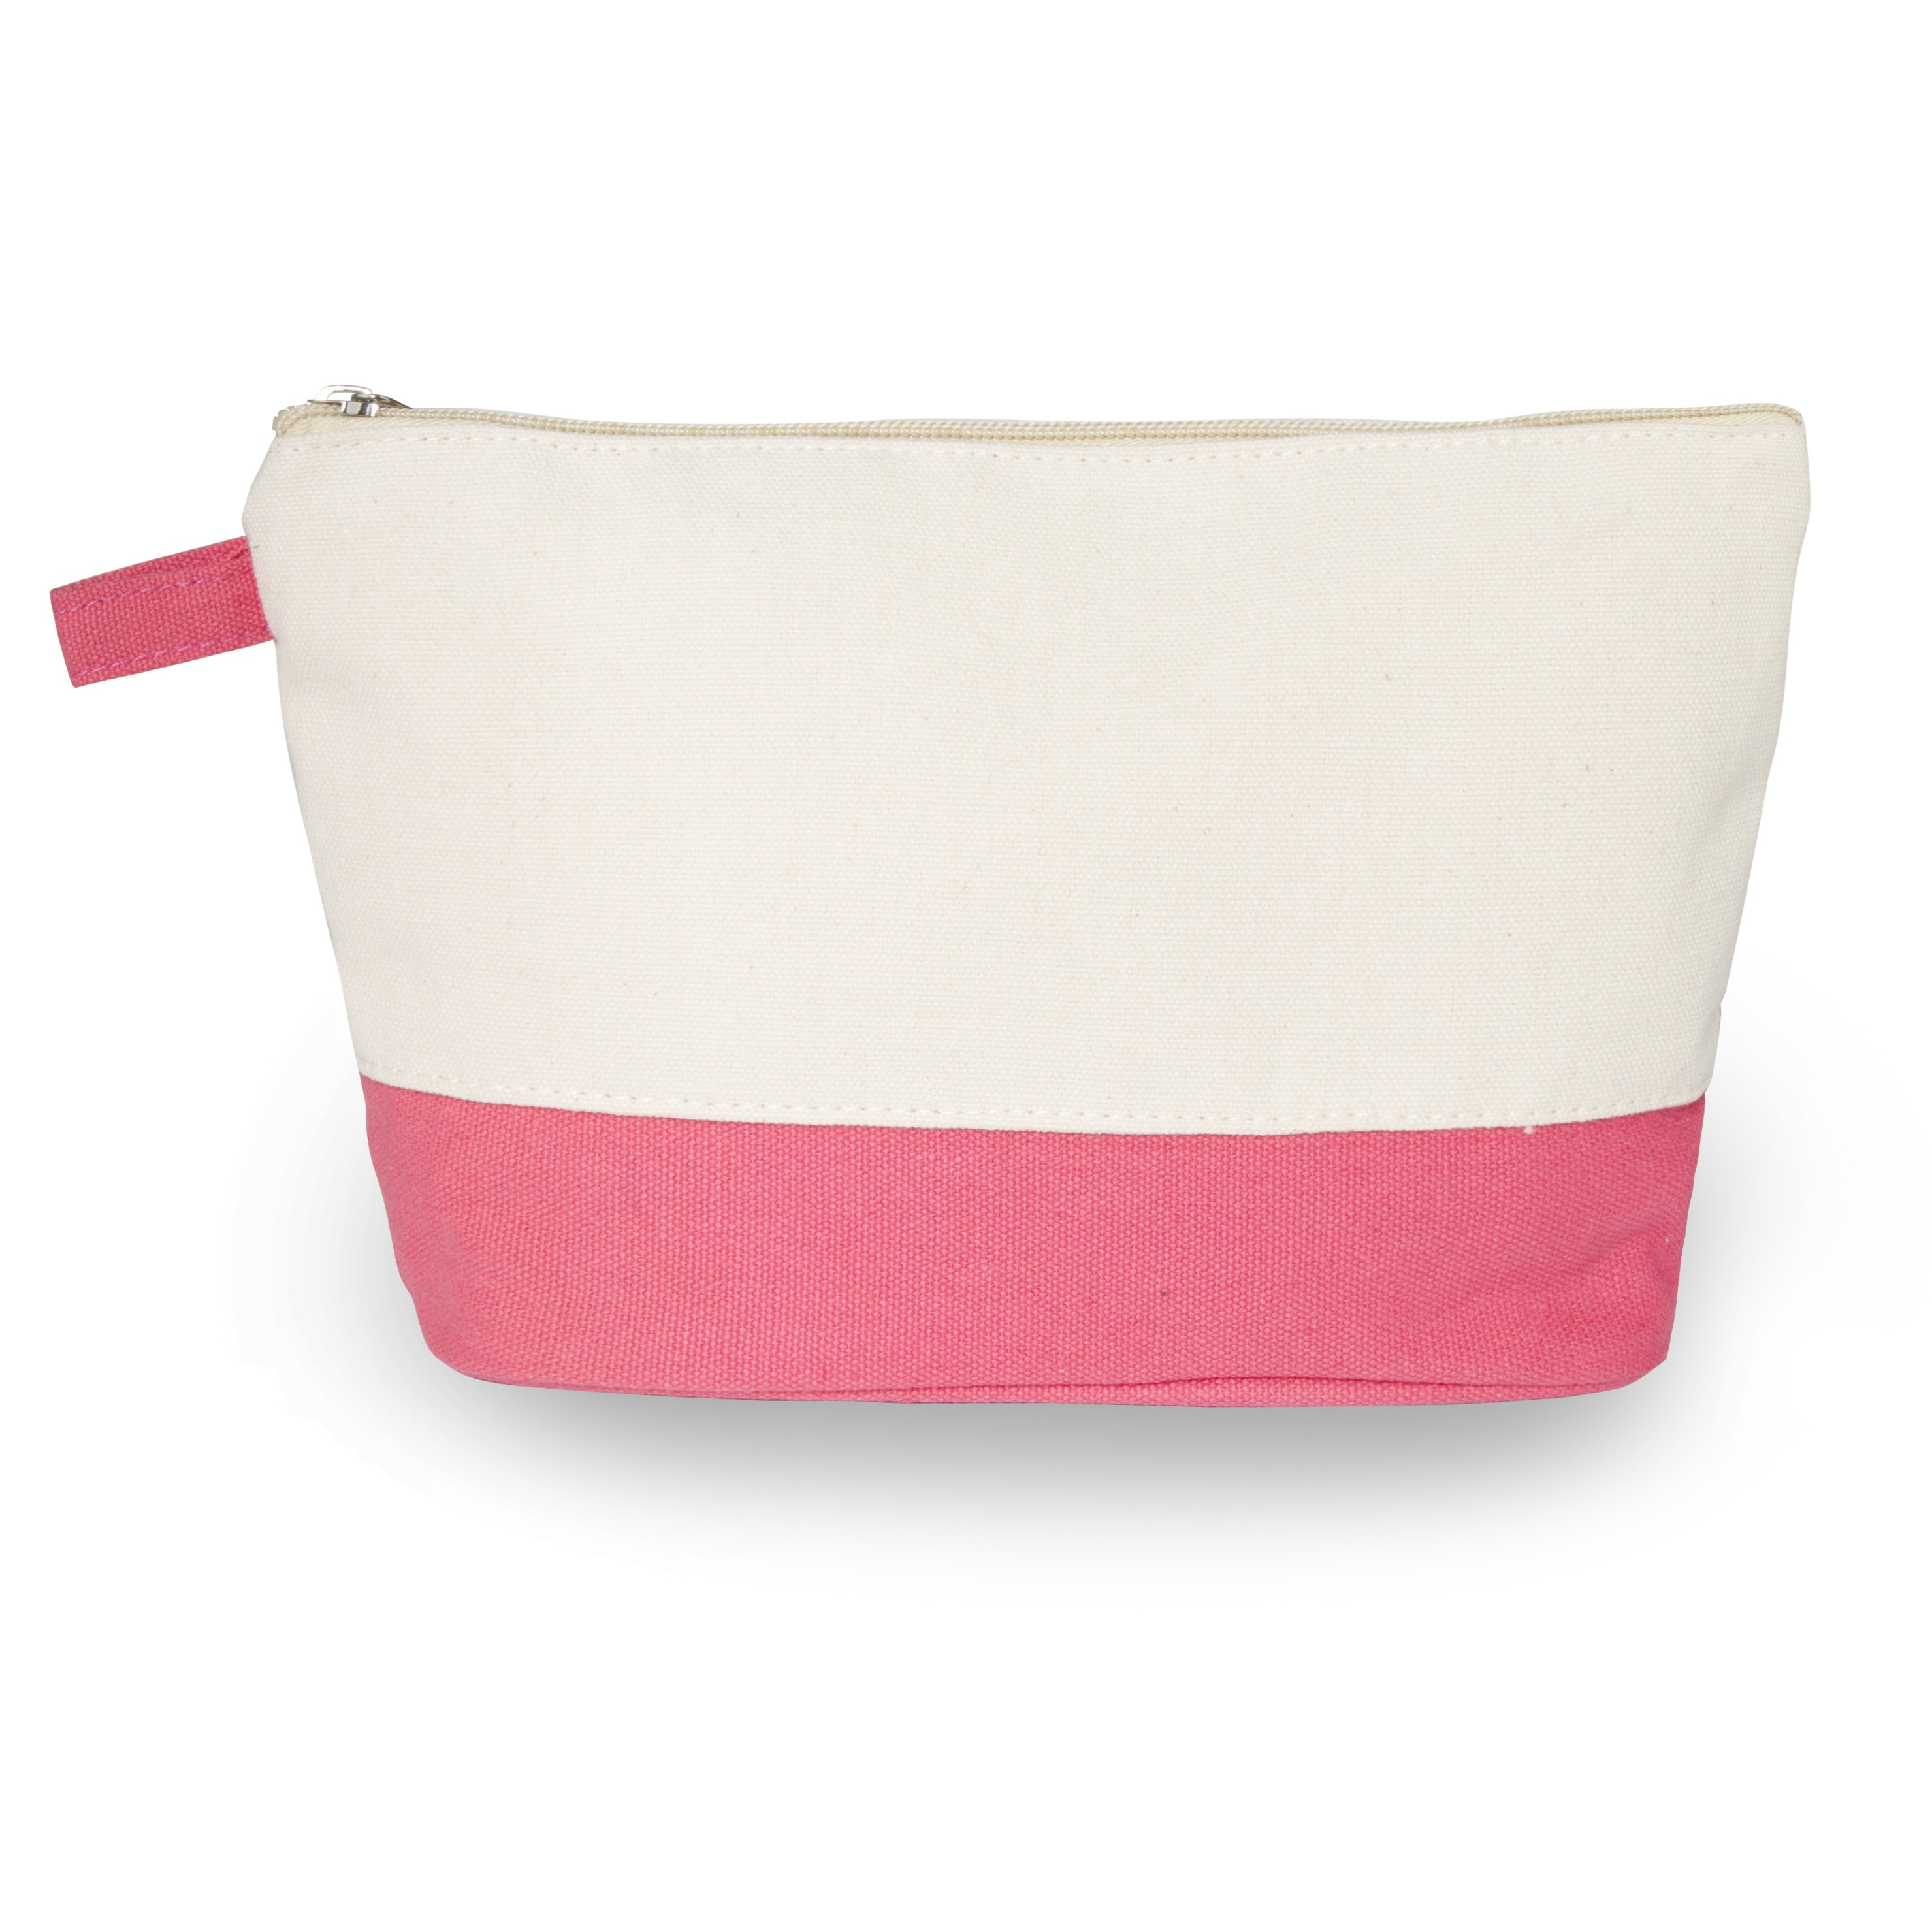 Cotton Canvas Cosmetic Clutch Bag